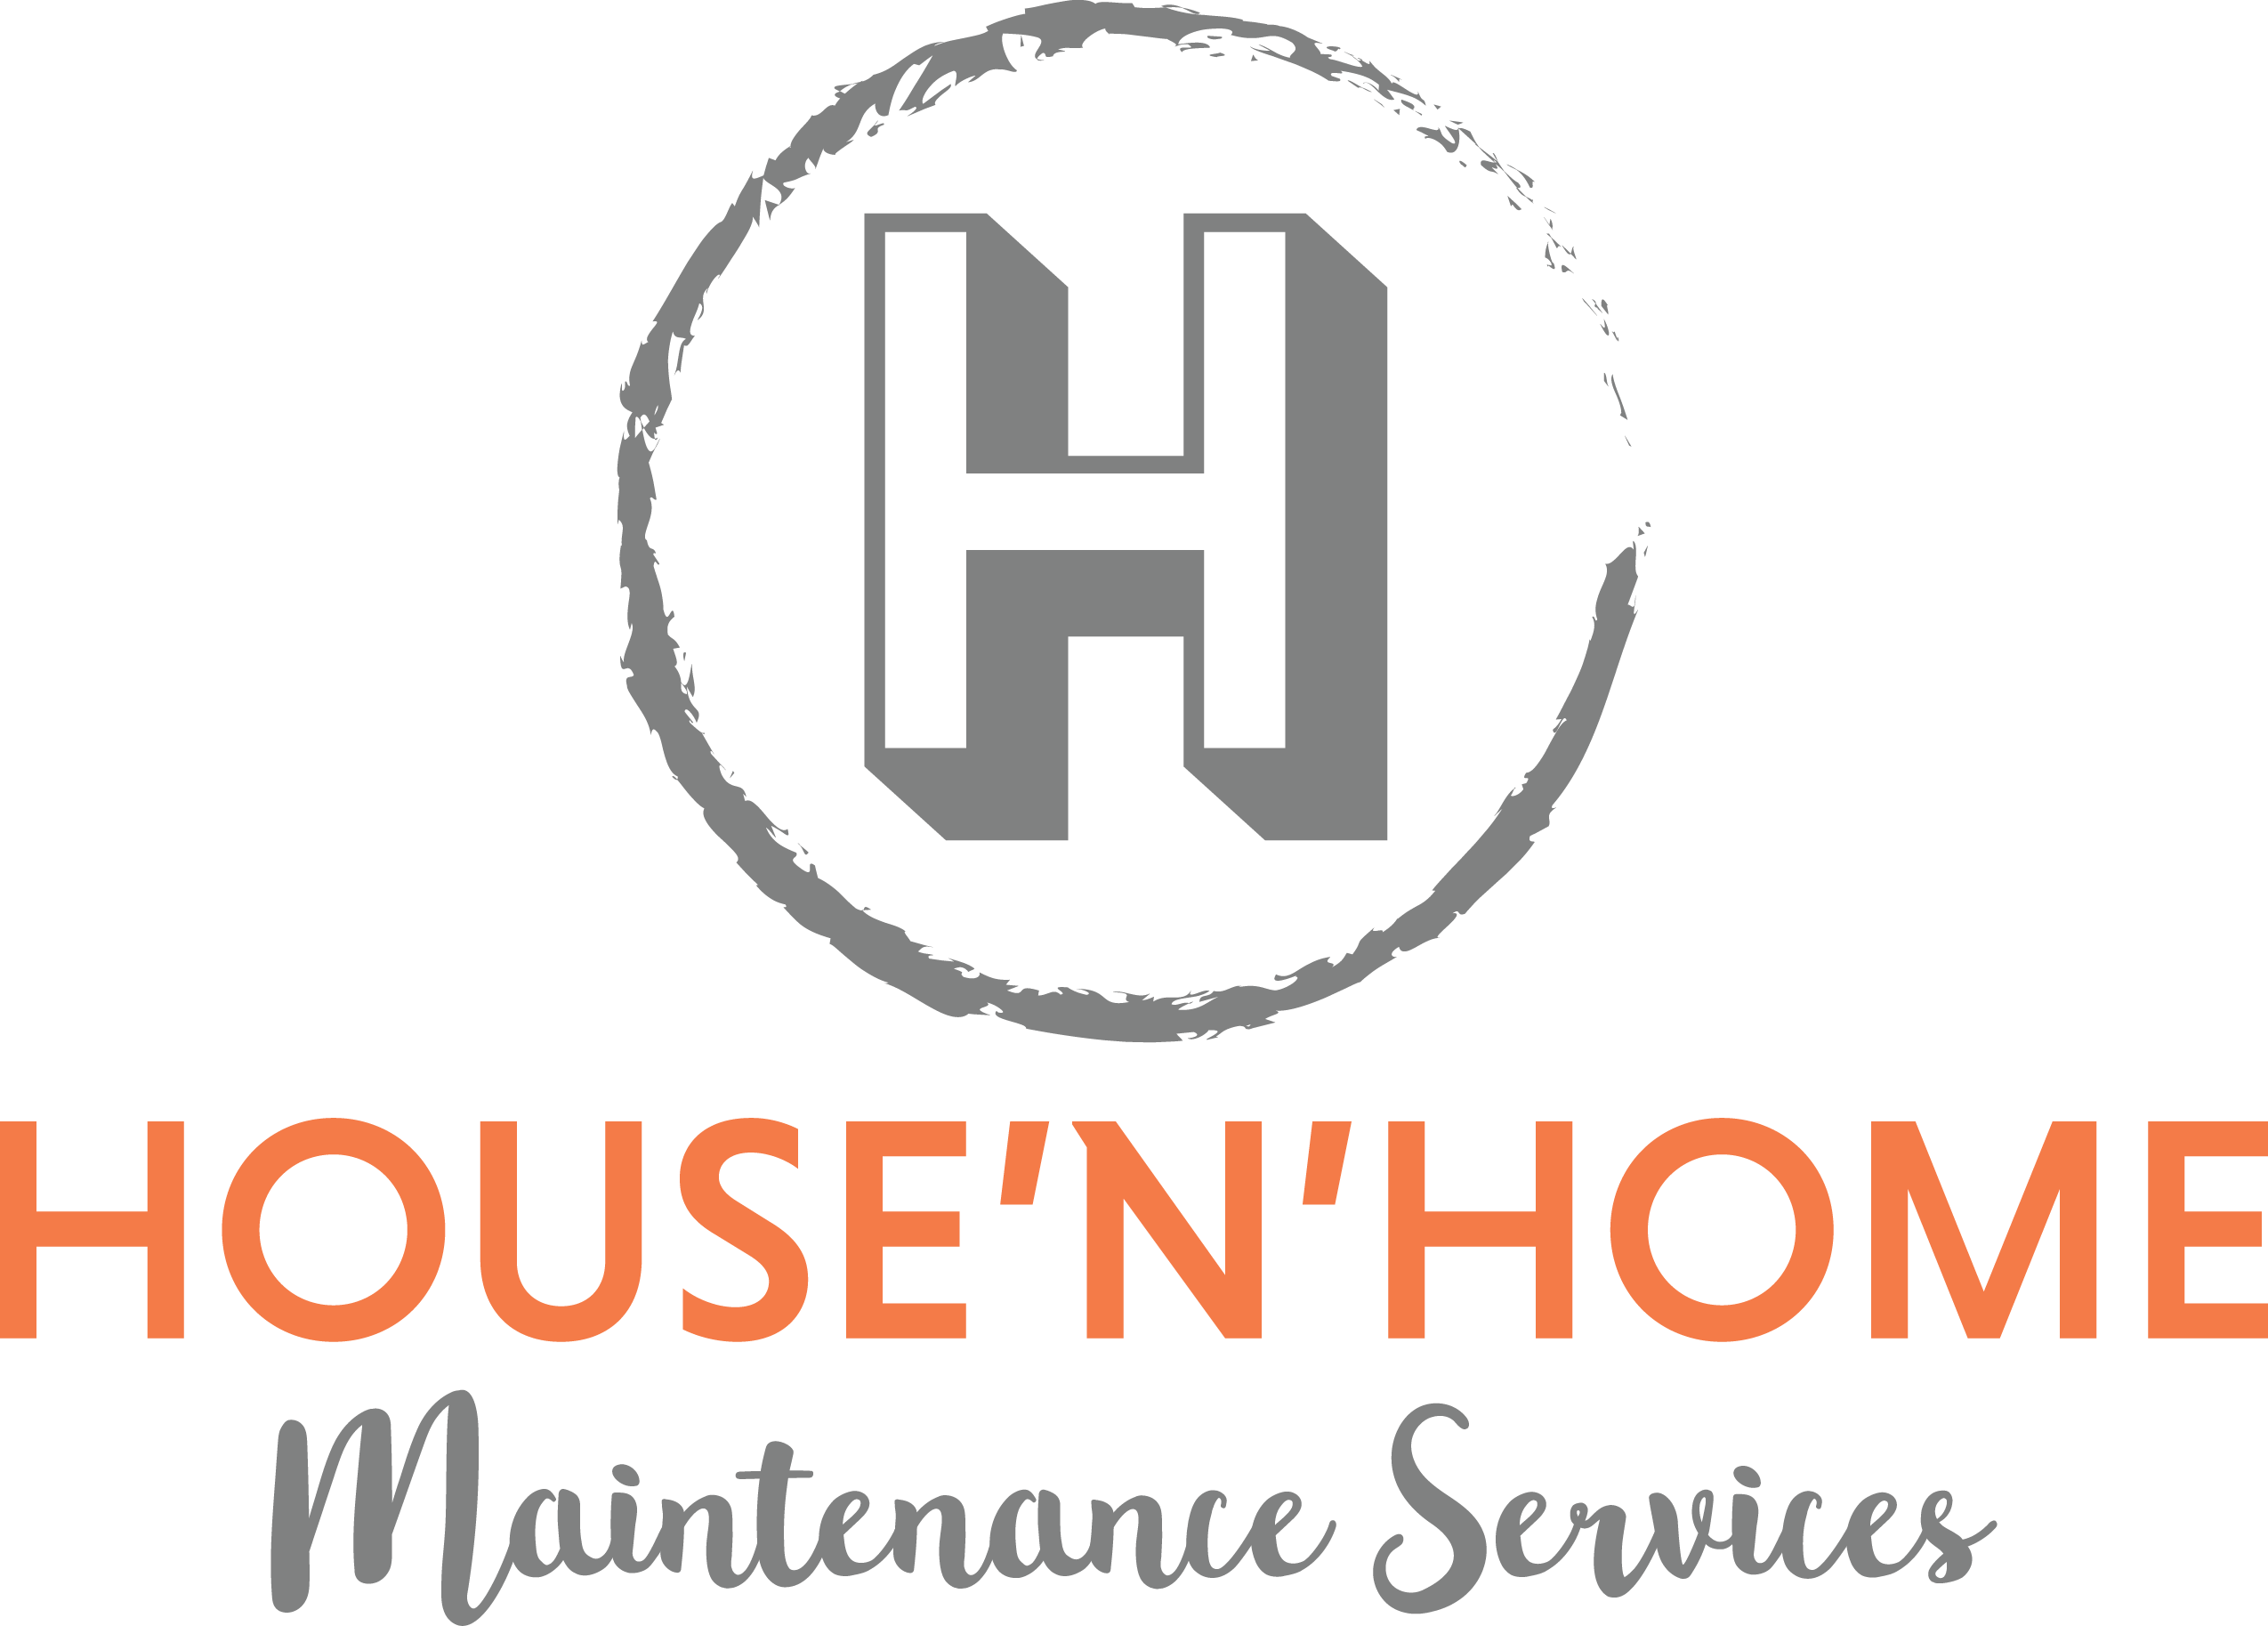 House N Home Maintenance Services